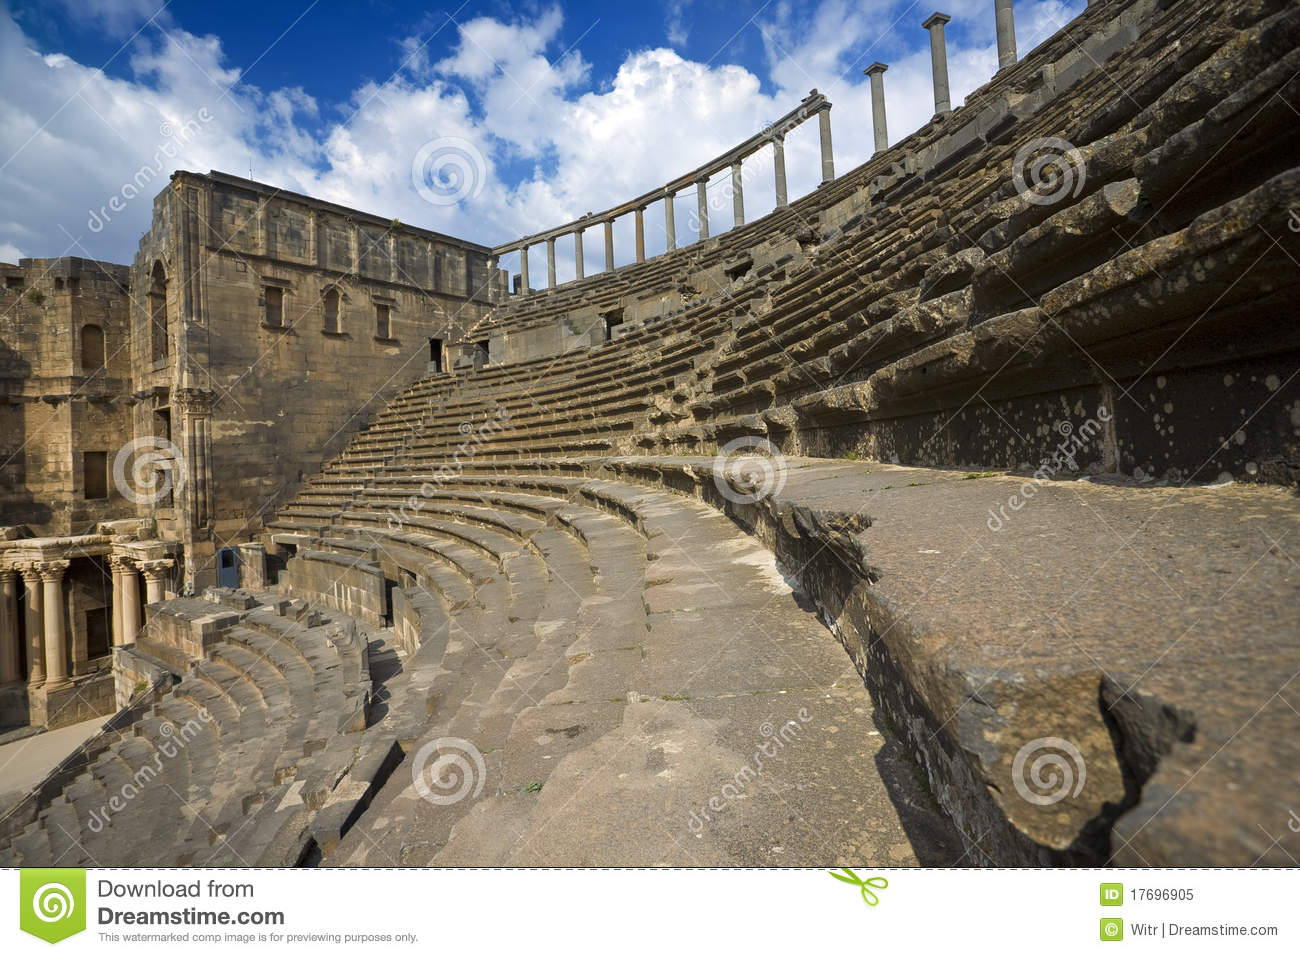 Das Theater in Bosra